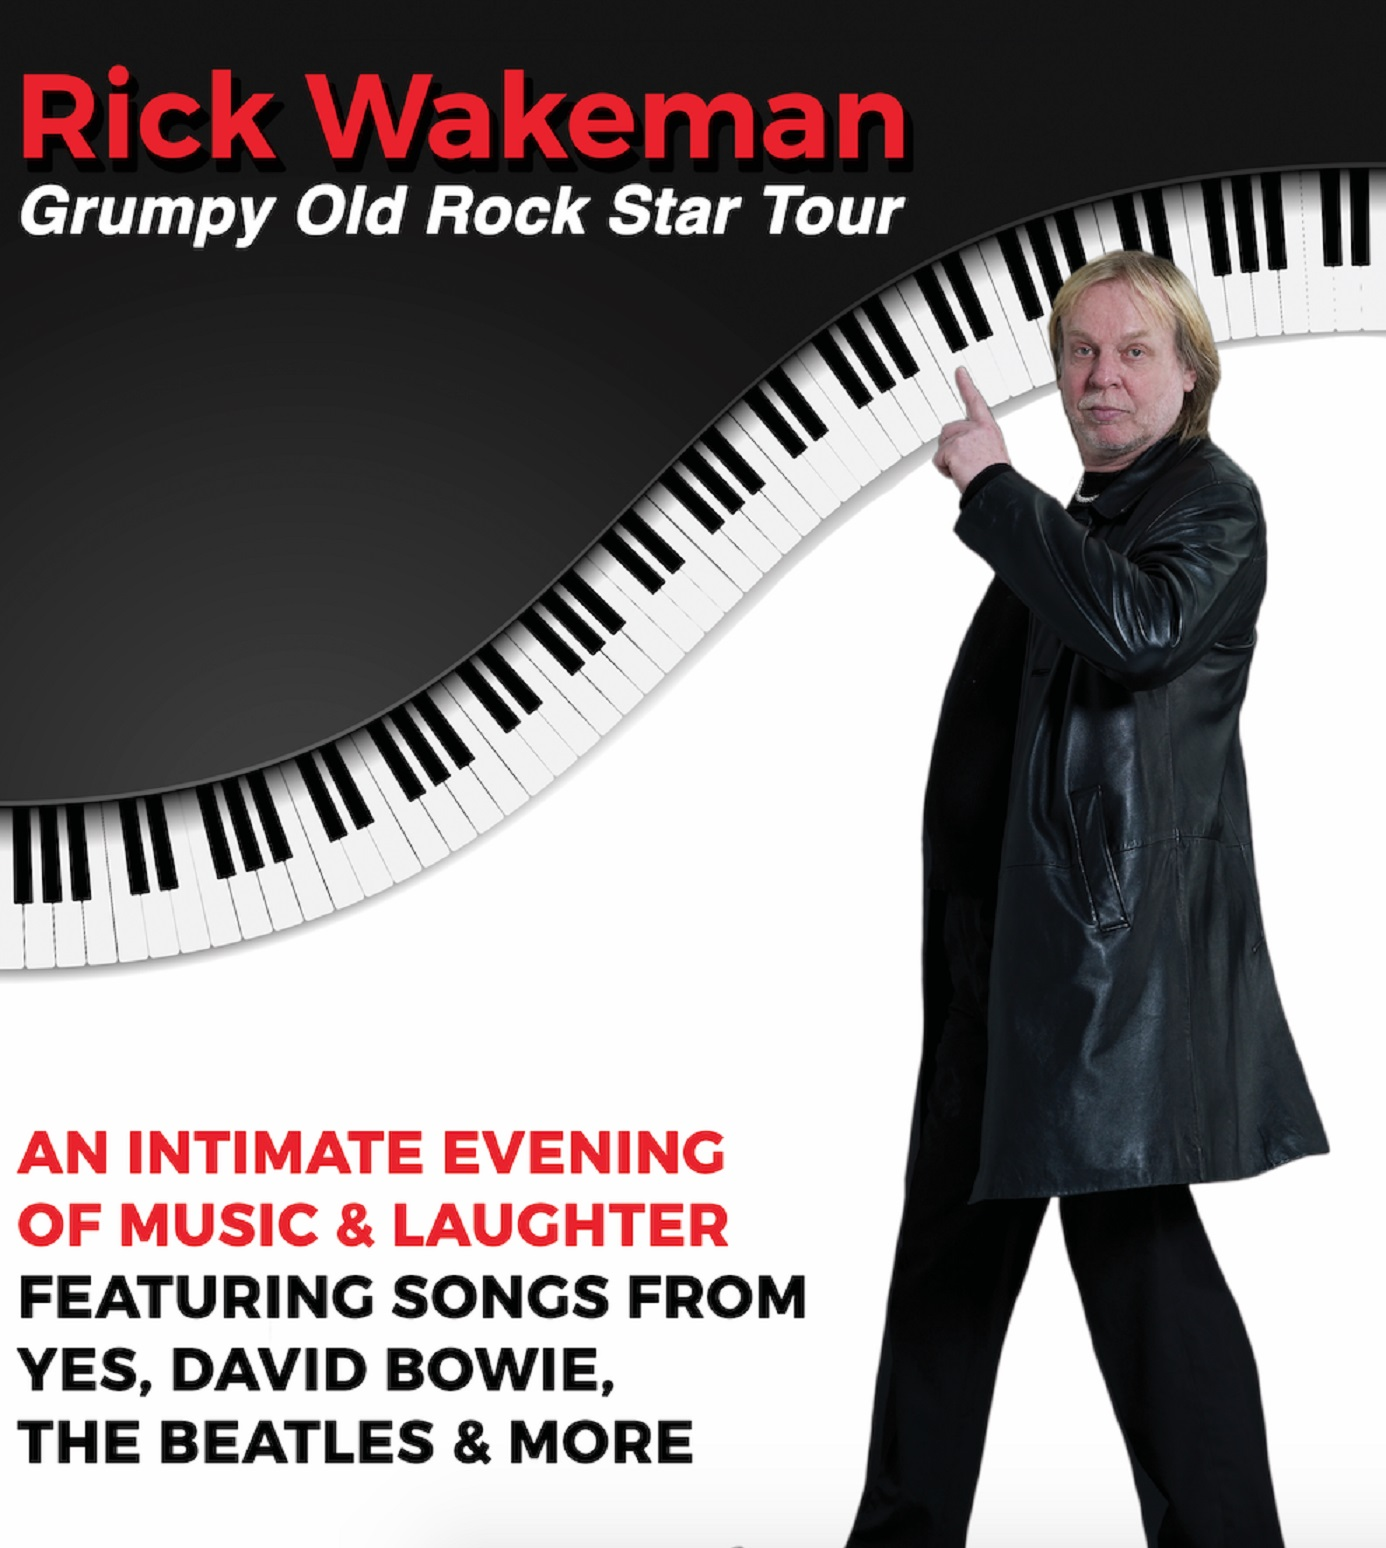 Rick Wakeman Embarks on First Solo U.S. Tour in 13 Years